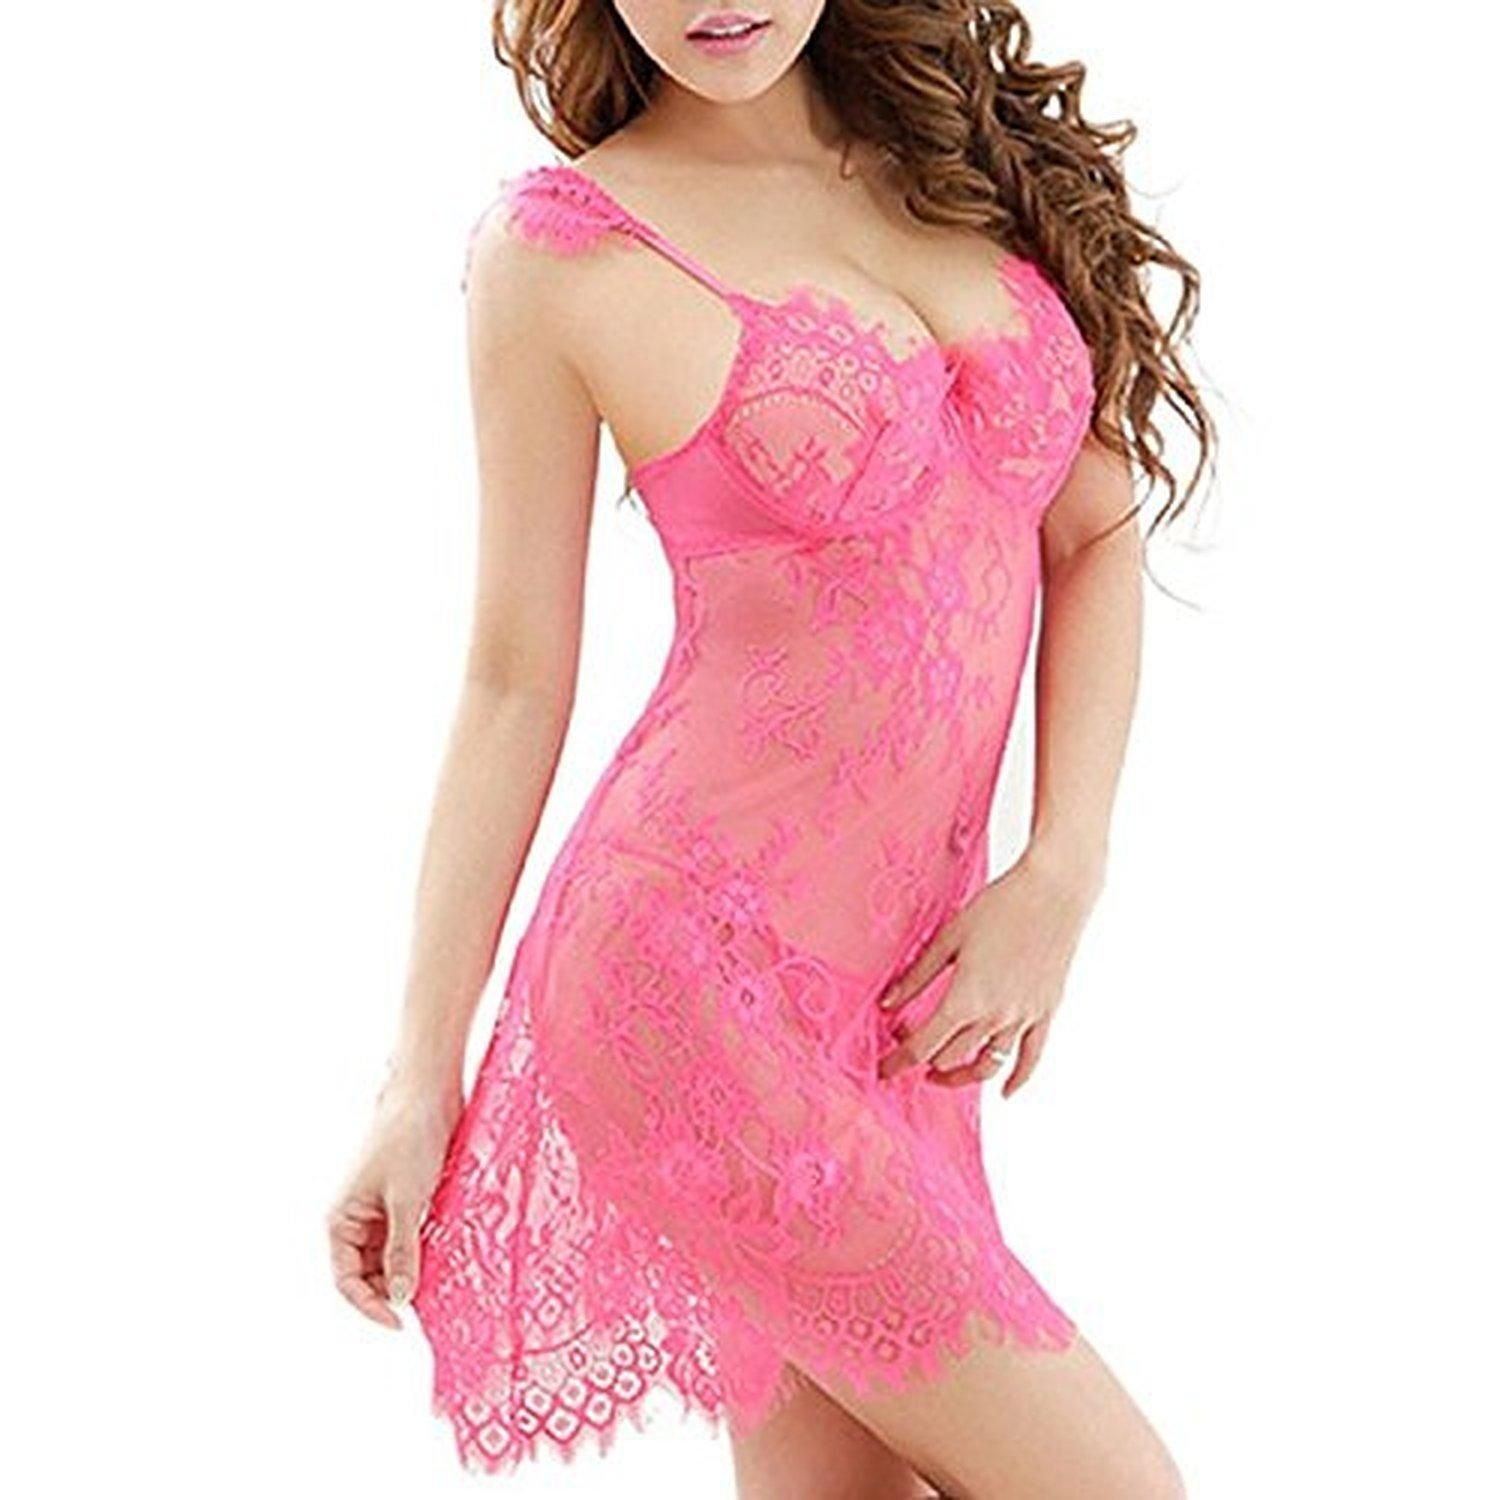 ODGear Sexy Lace Braces Skirt with G-String for Women Sex Temptation ...